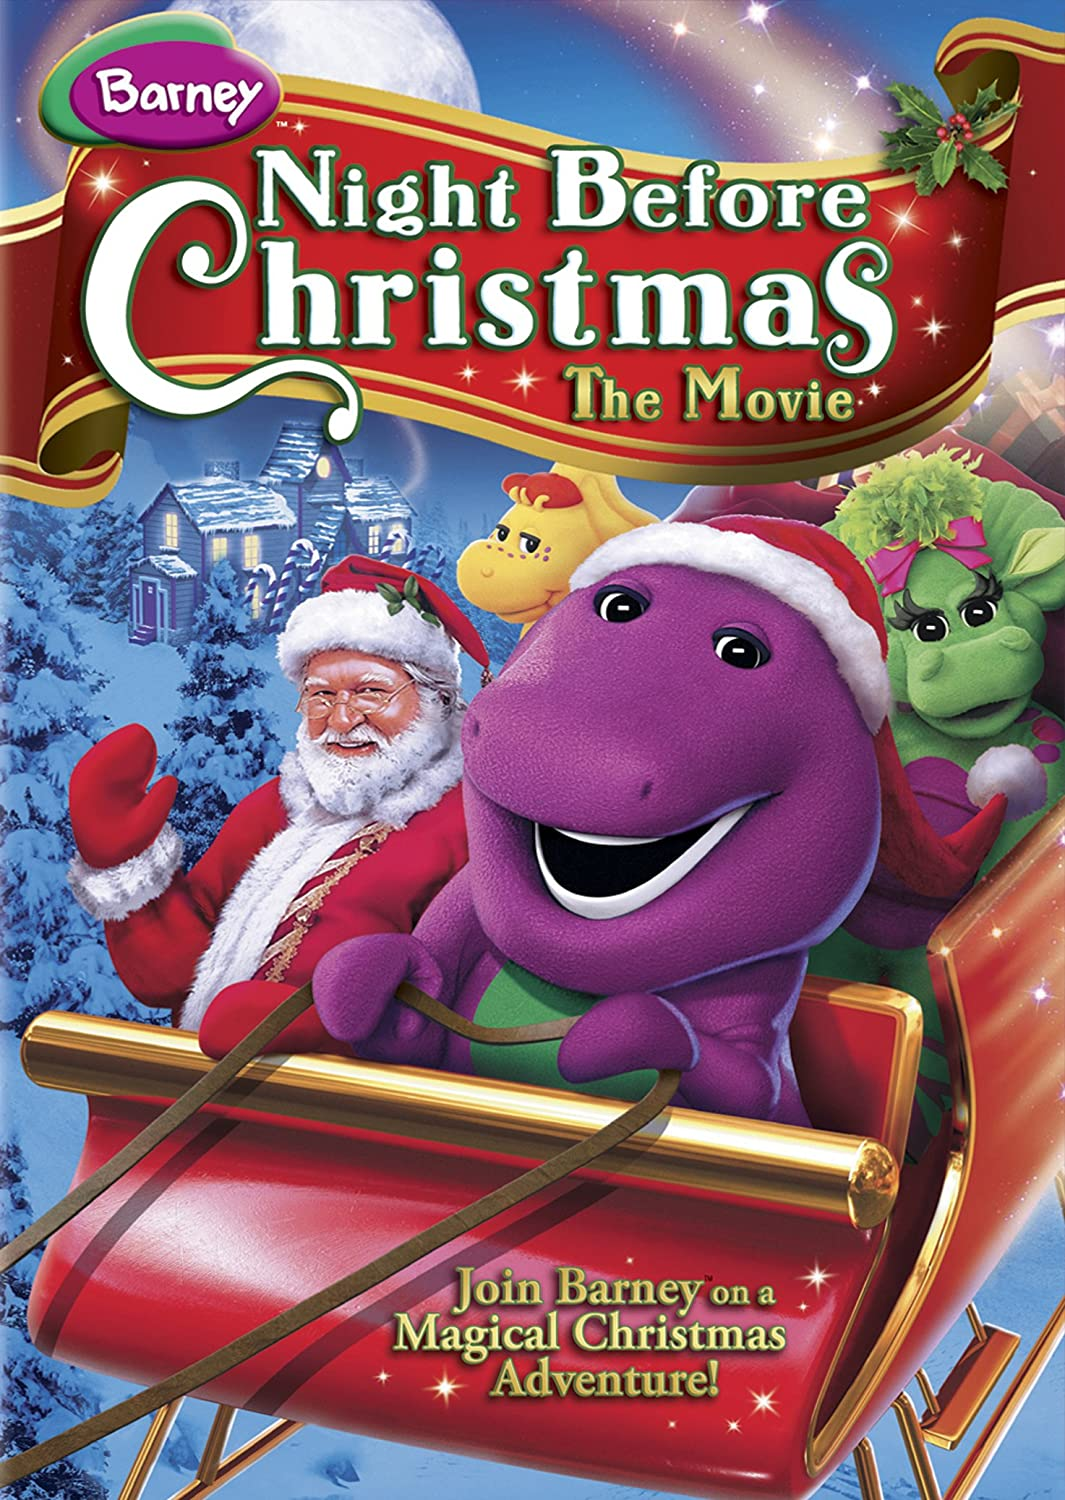 Amazon.com: Barney: Night Before Christmas (The Movie): David Joyner ...